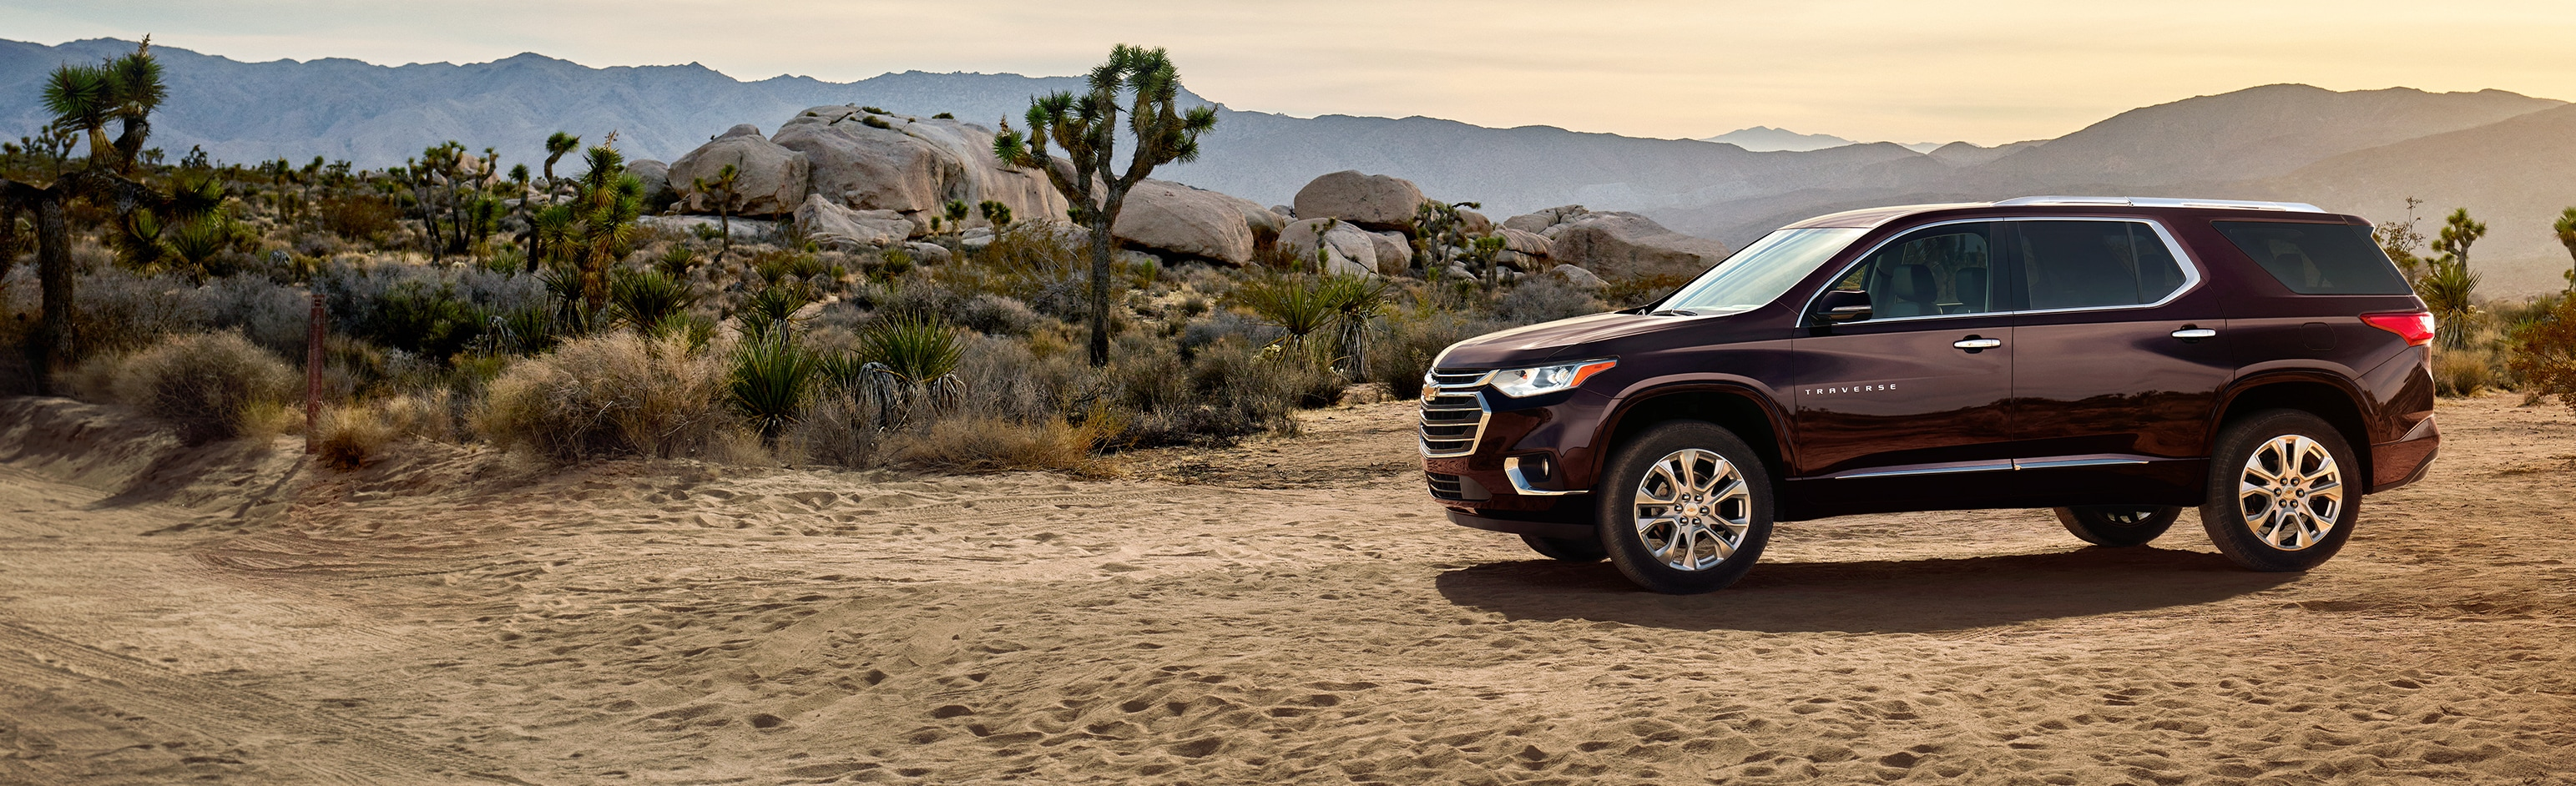 Buy or Lease a New Chevrolet Traverse For Sale in Greenville, SC